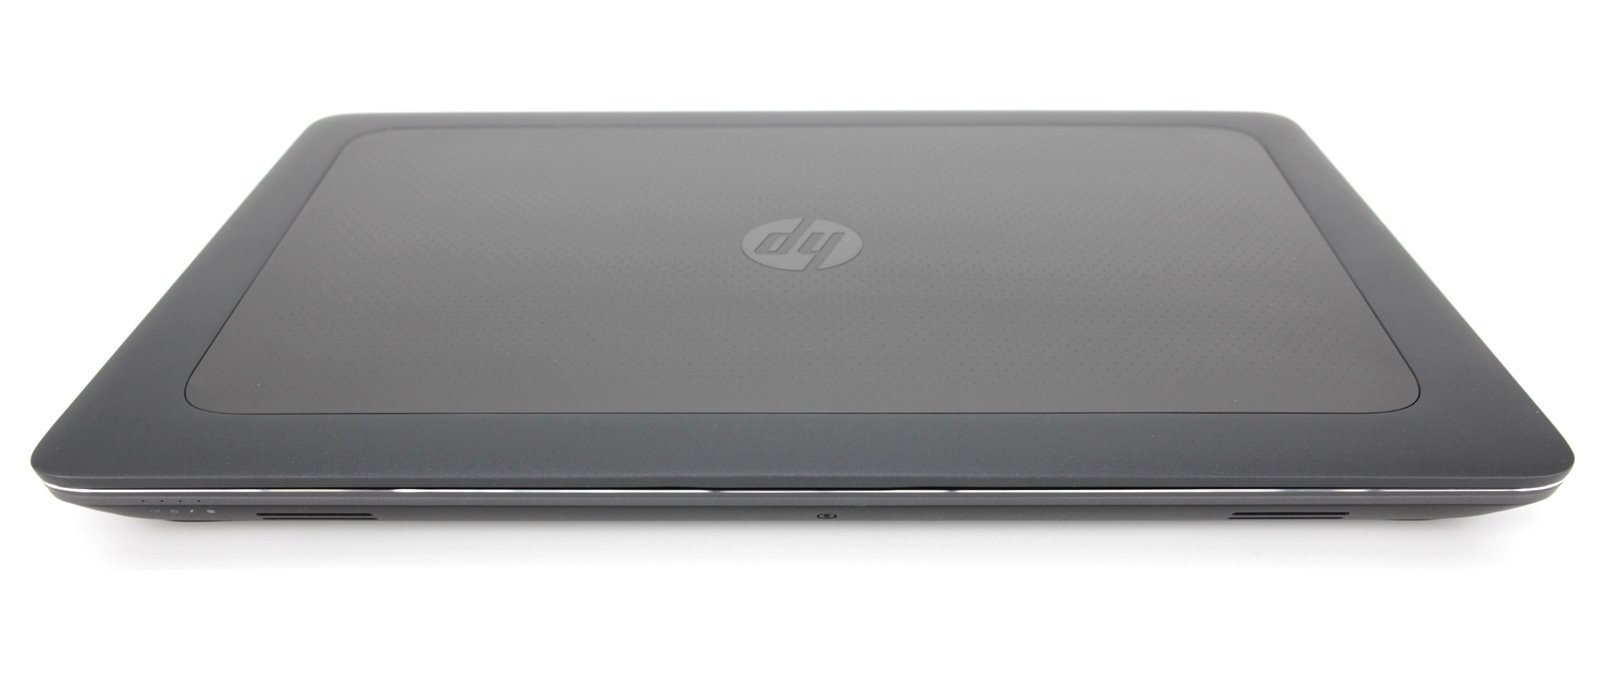 HP ZBook 17 G3 Laptop: Core i7-6820HQ M4000M, 32GB RAM, 512GB+1TB Warranty - CruiseTech